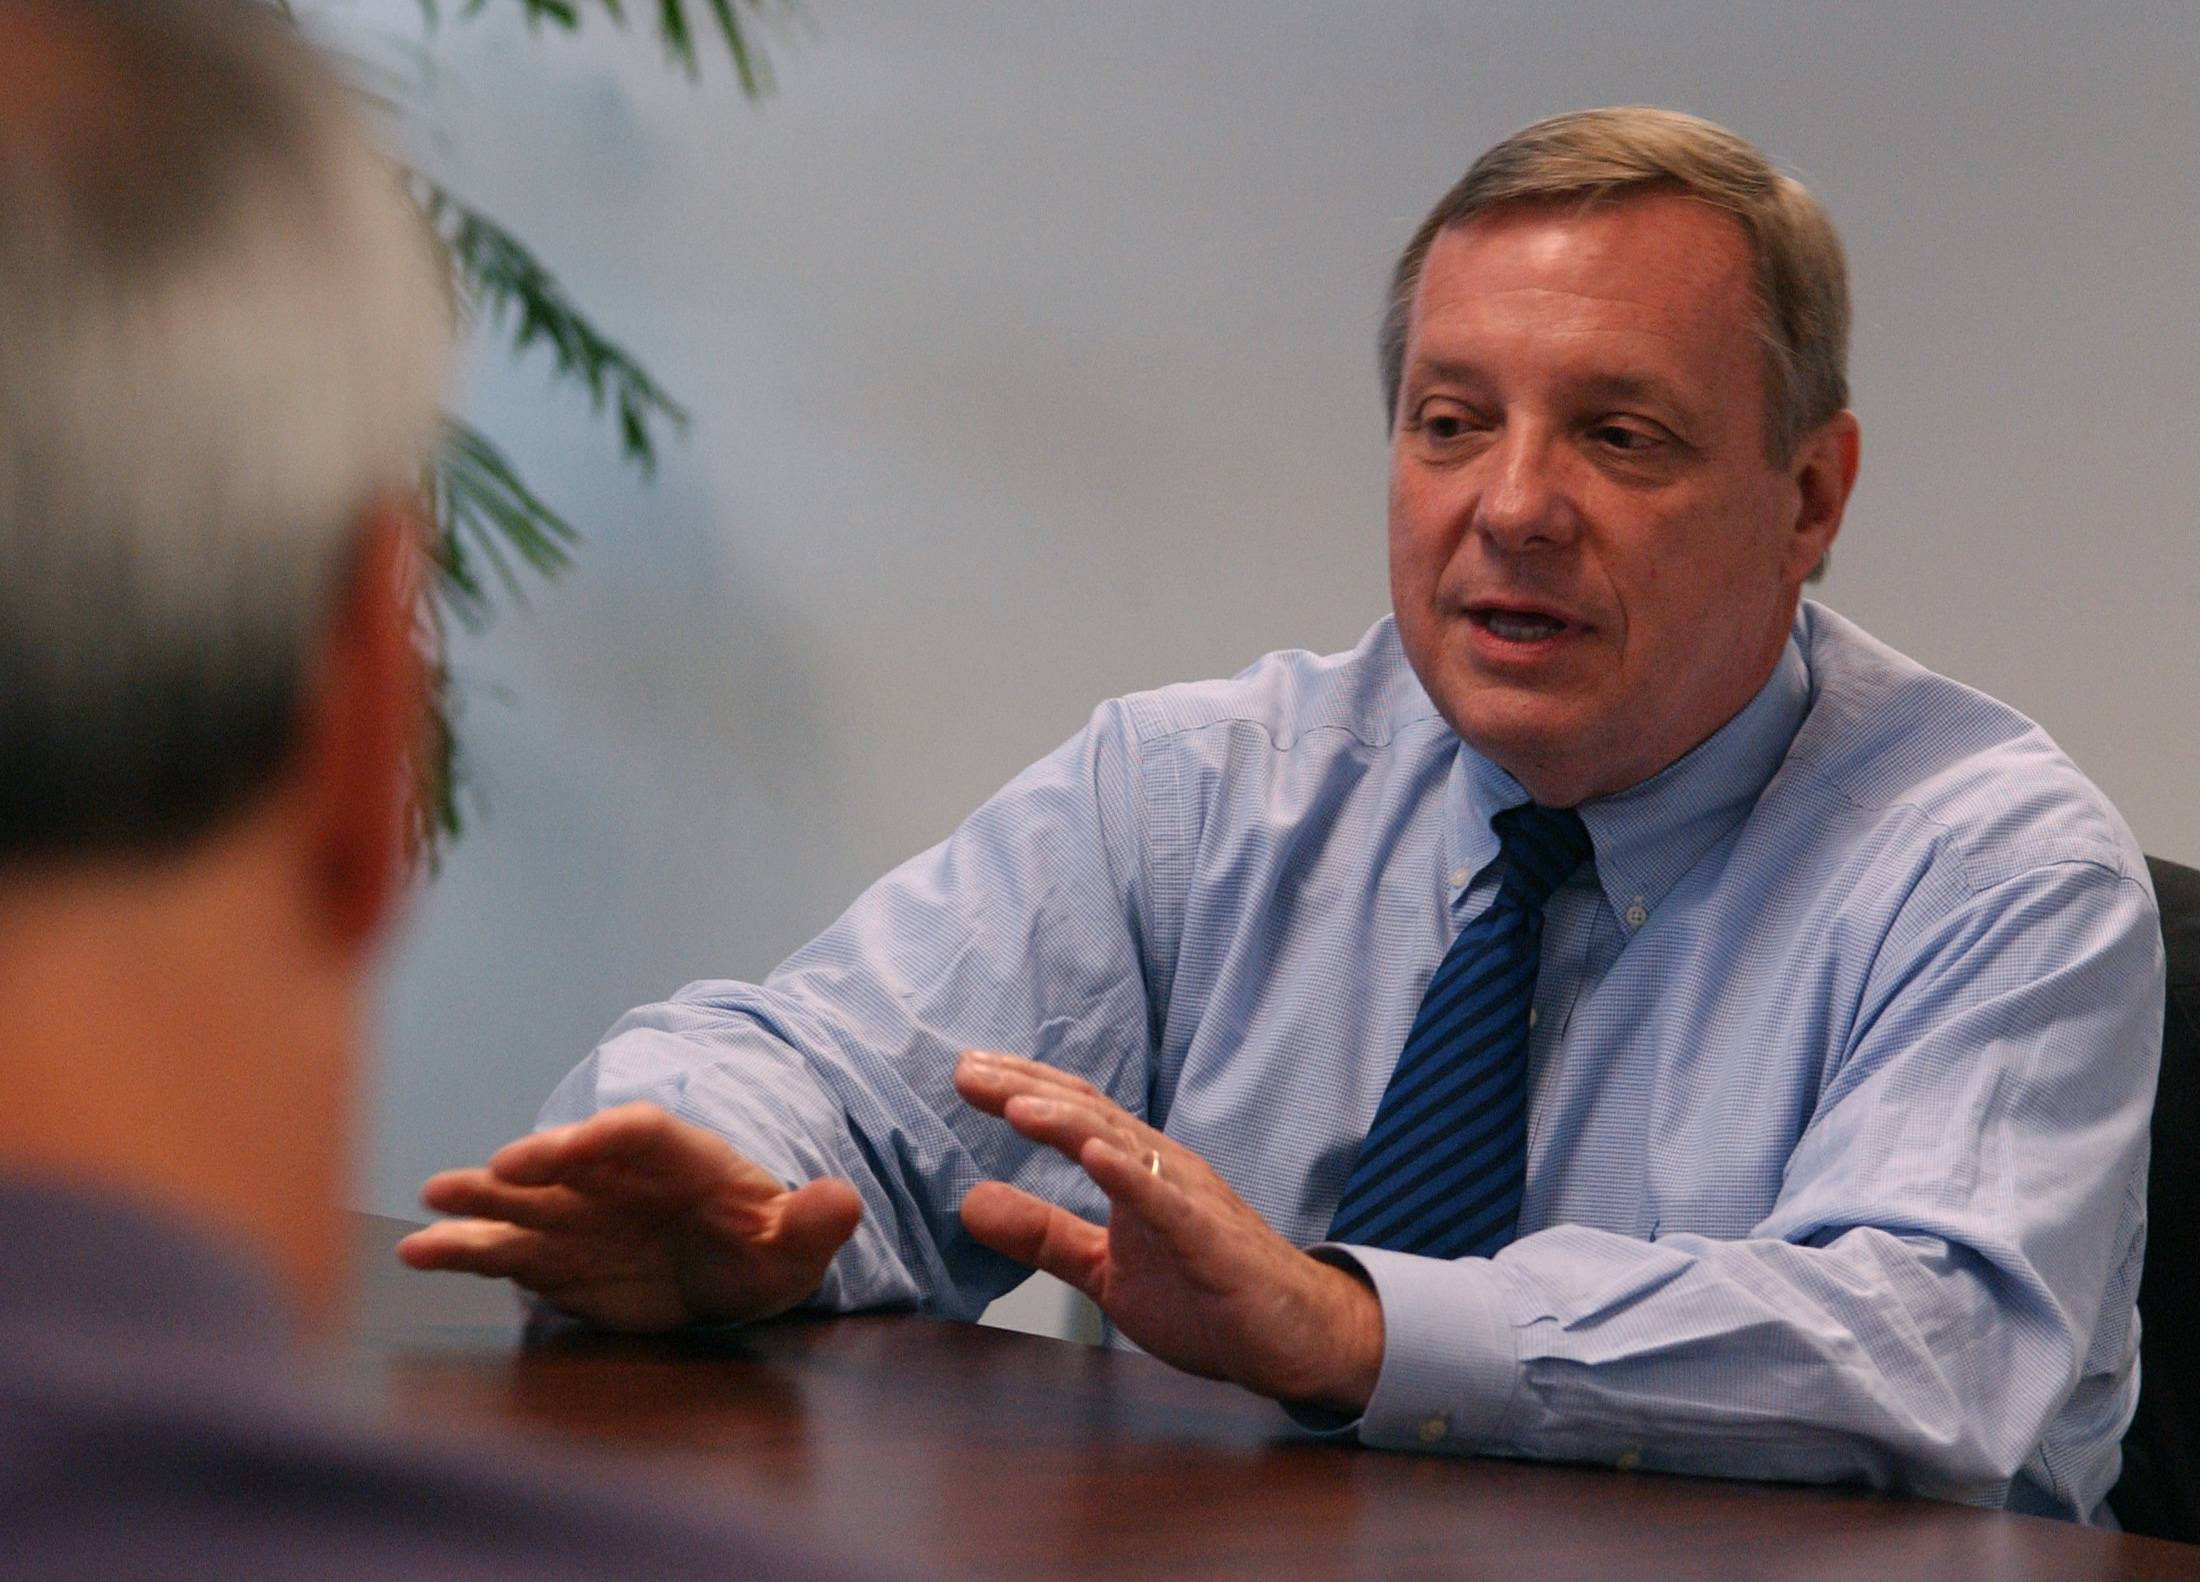 U.S. Sen. Dick Durbin is holding a second hearing on the use of solitary confinement in U.S. prisons and jails.